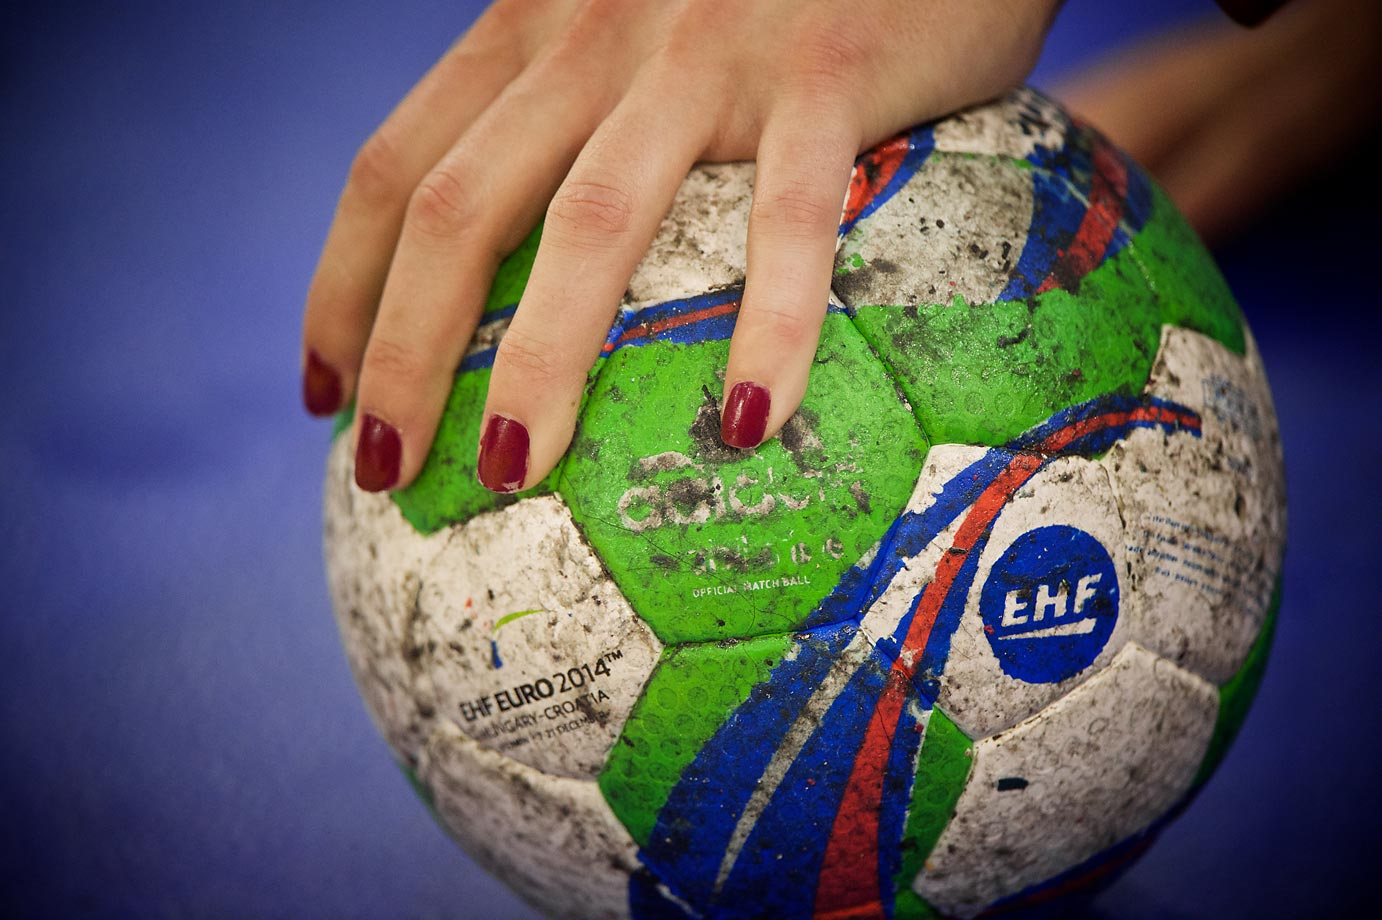 A member of Spain's women's handball team sports red fingernails before the championship match.